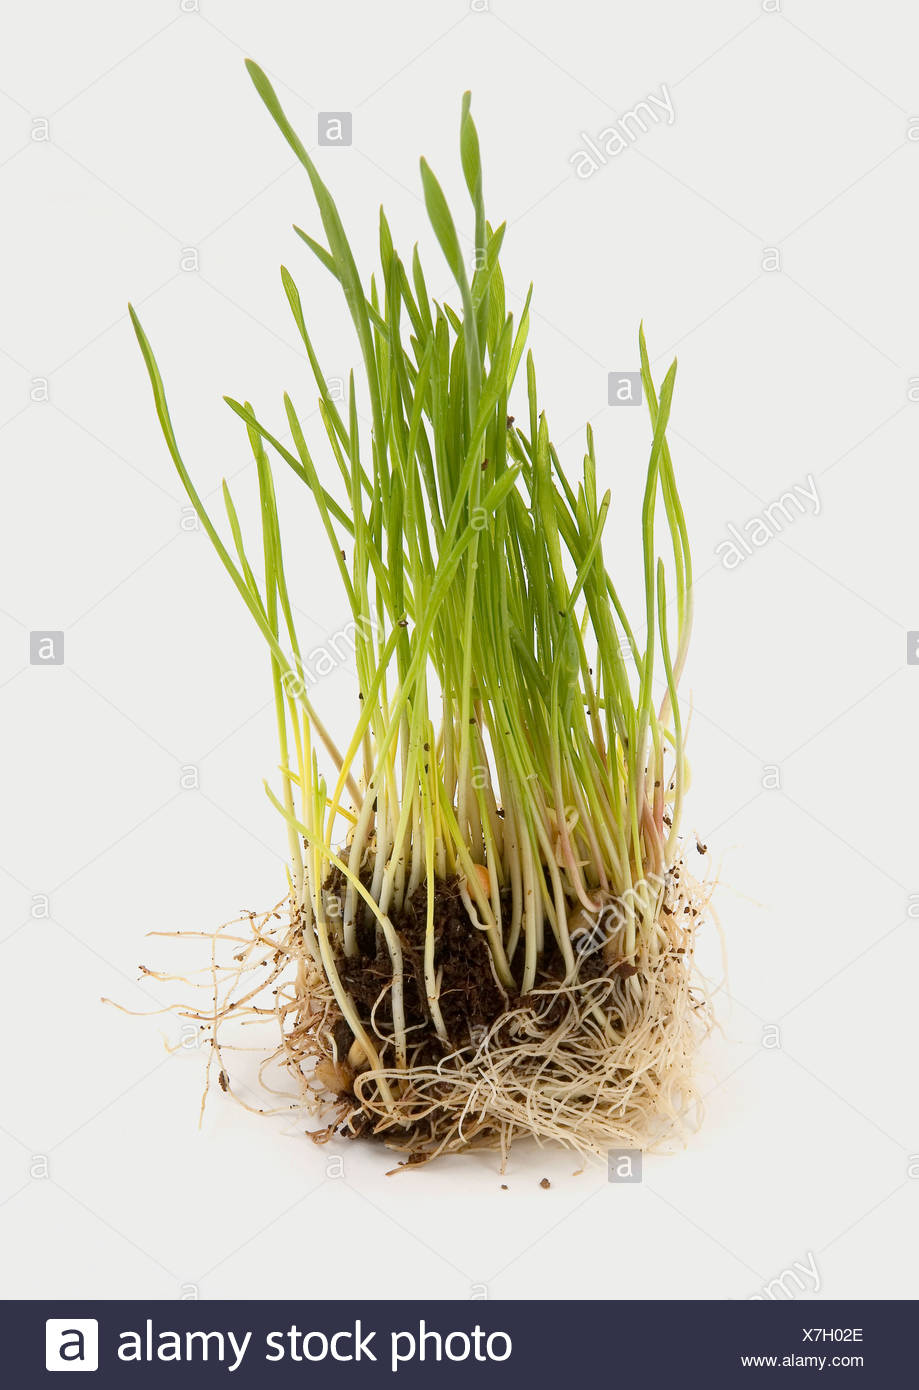 Close-up of wheat grass - Stock Image